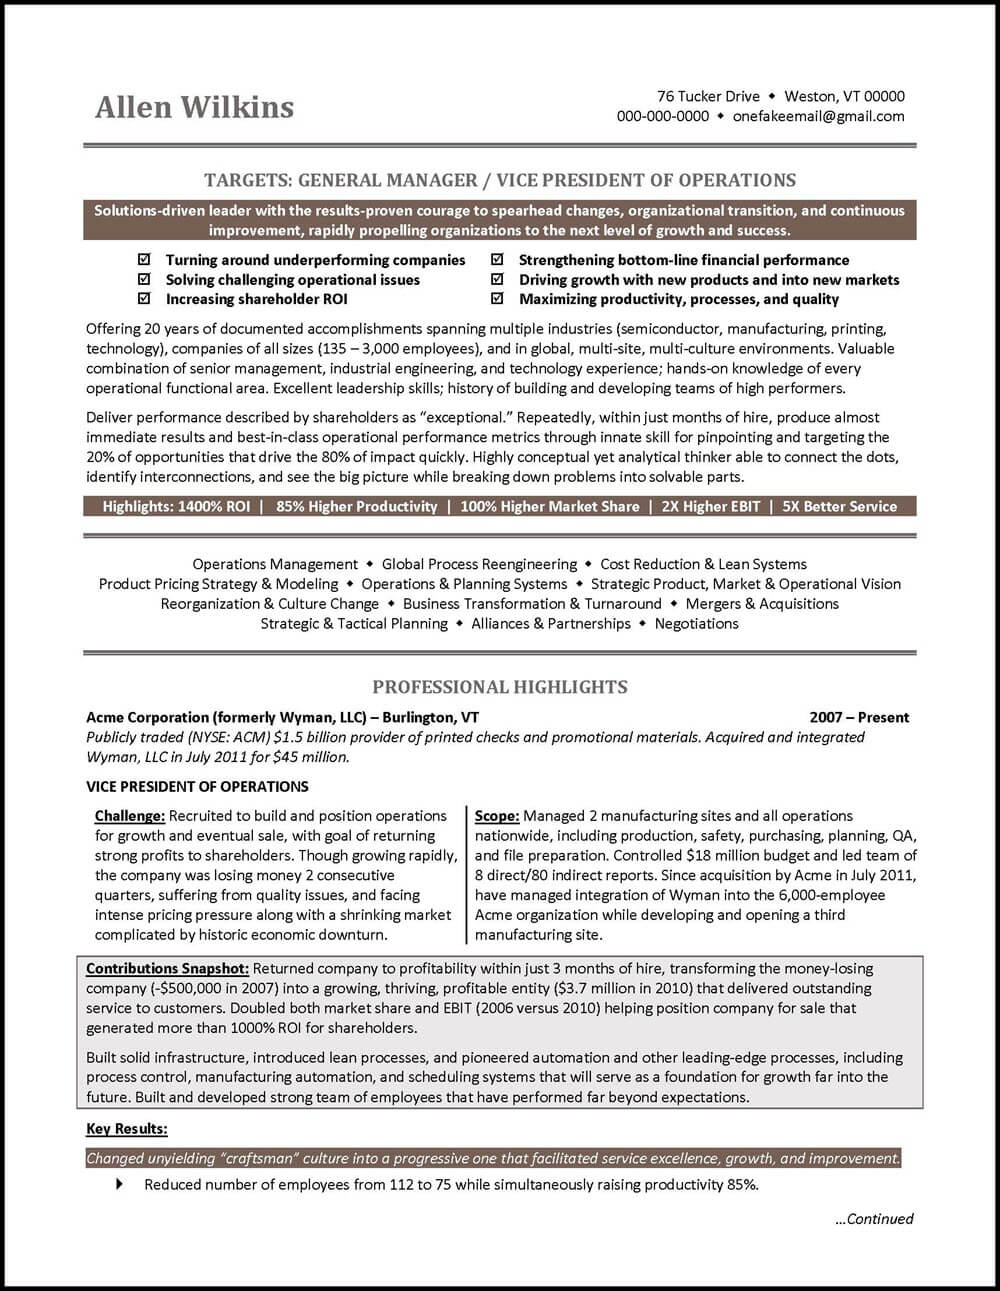 vice president resume example distinctive career services executive examples securitas Resume Executive Vice President Resume Examples